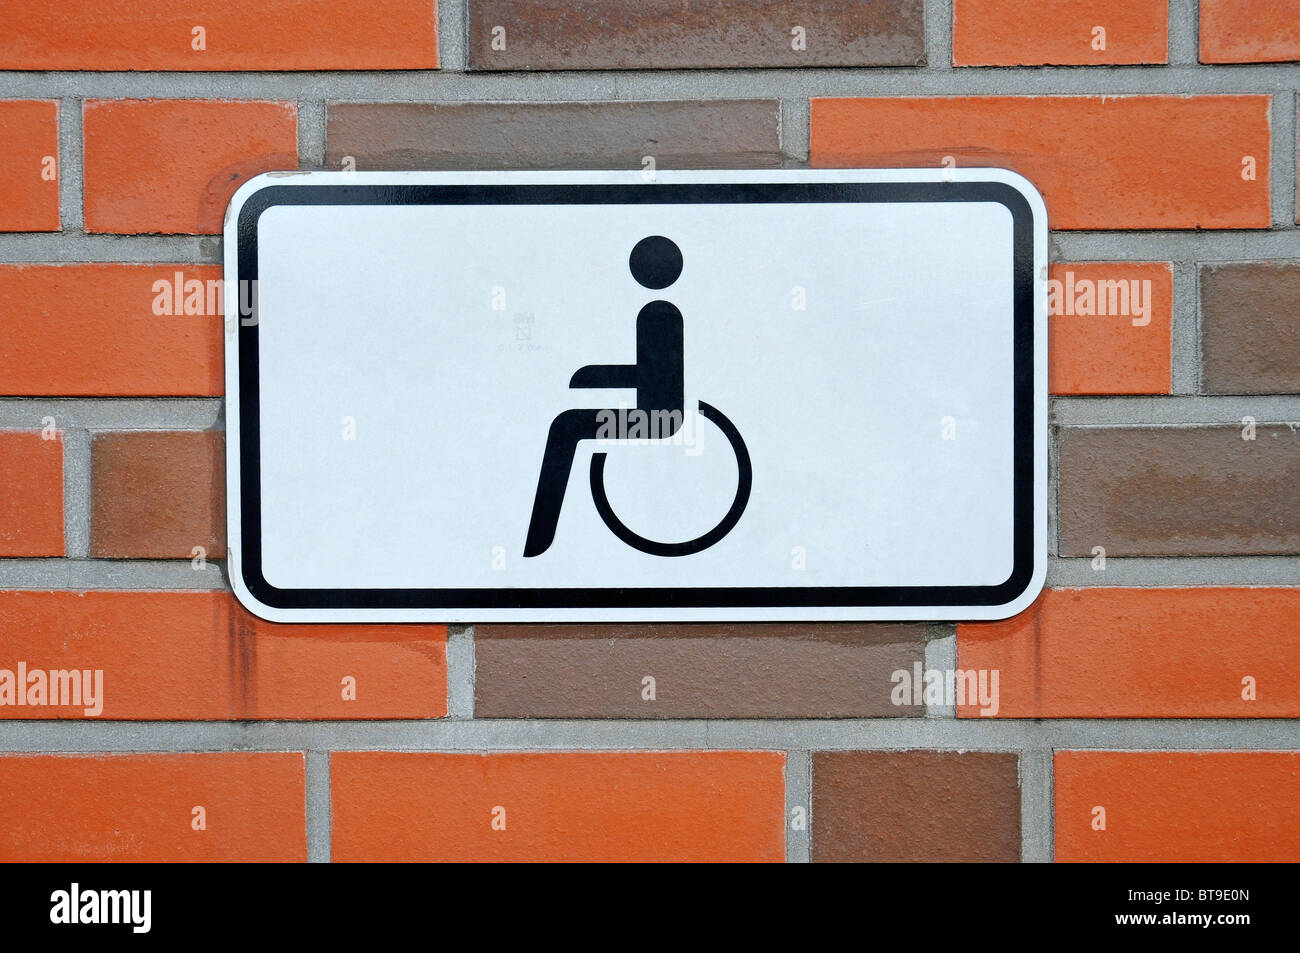 Accessibility for wheelchair users, pictogram, wall - Stock Image